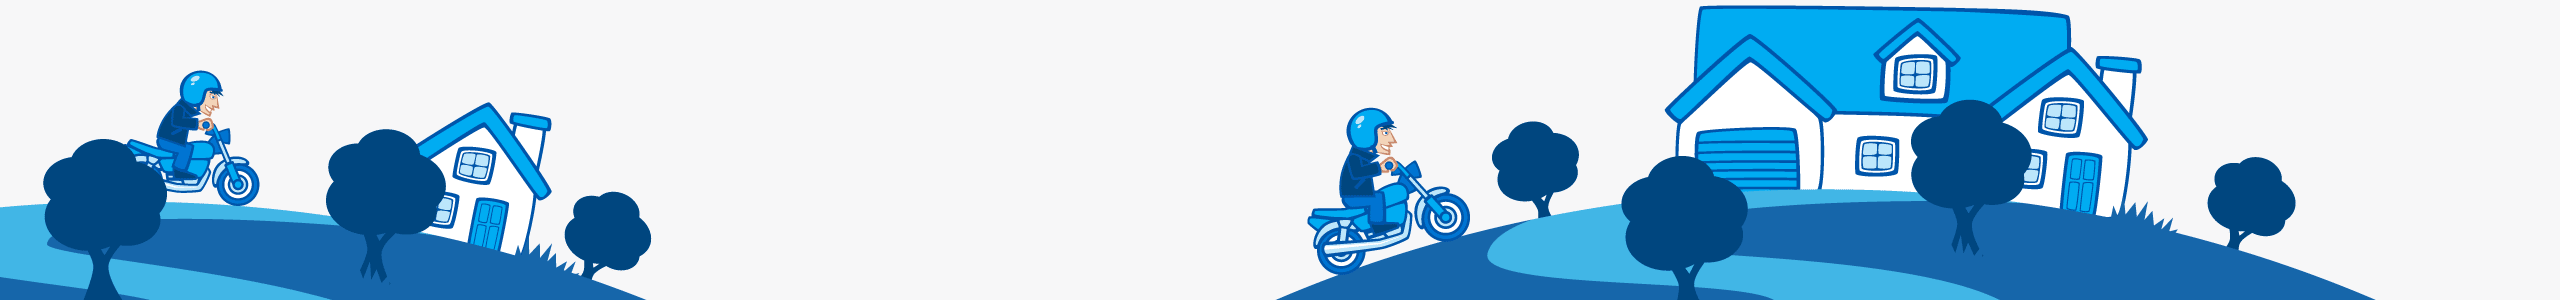 bad credit motorbike loans background